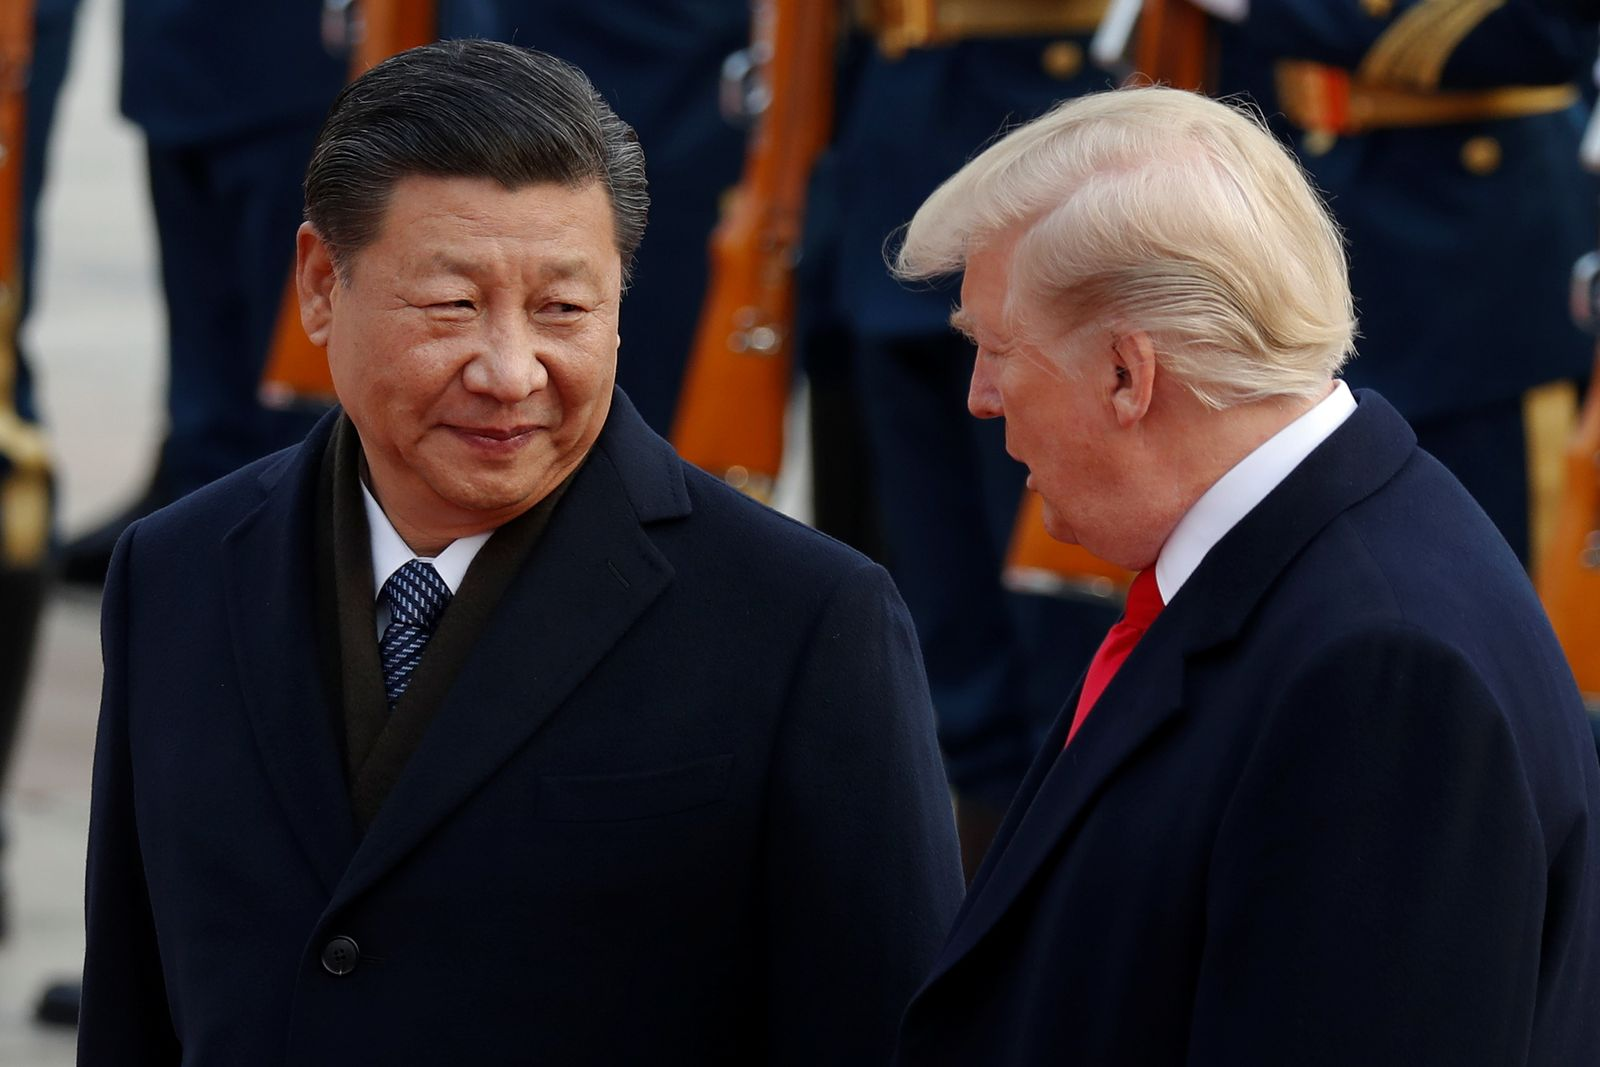 U.S. President Donald Trump takes part in a welcoming ceremony with China's President Xi Jinping at the Great Hall of the People in Beijing